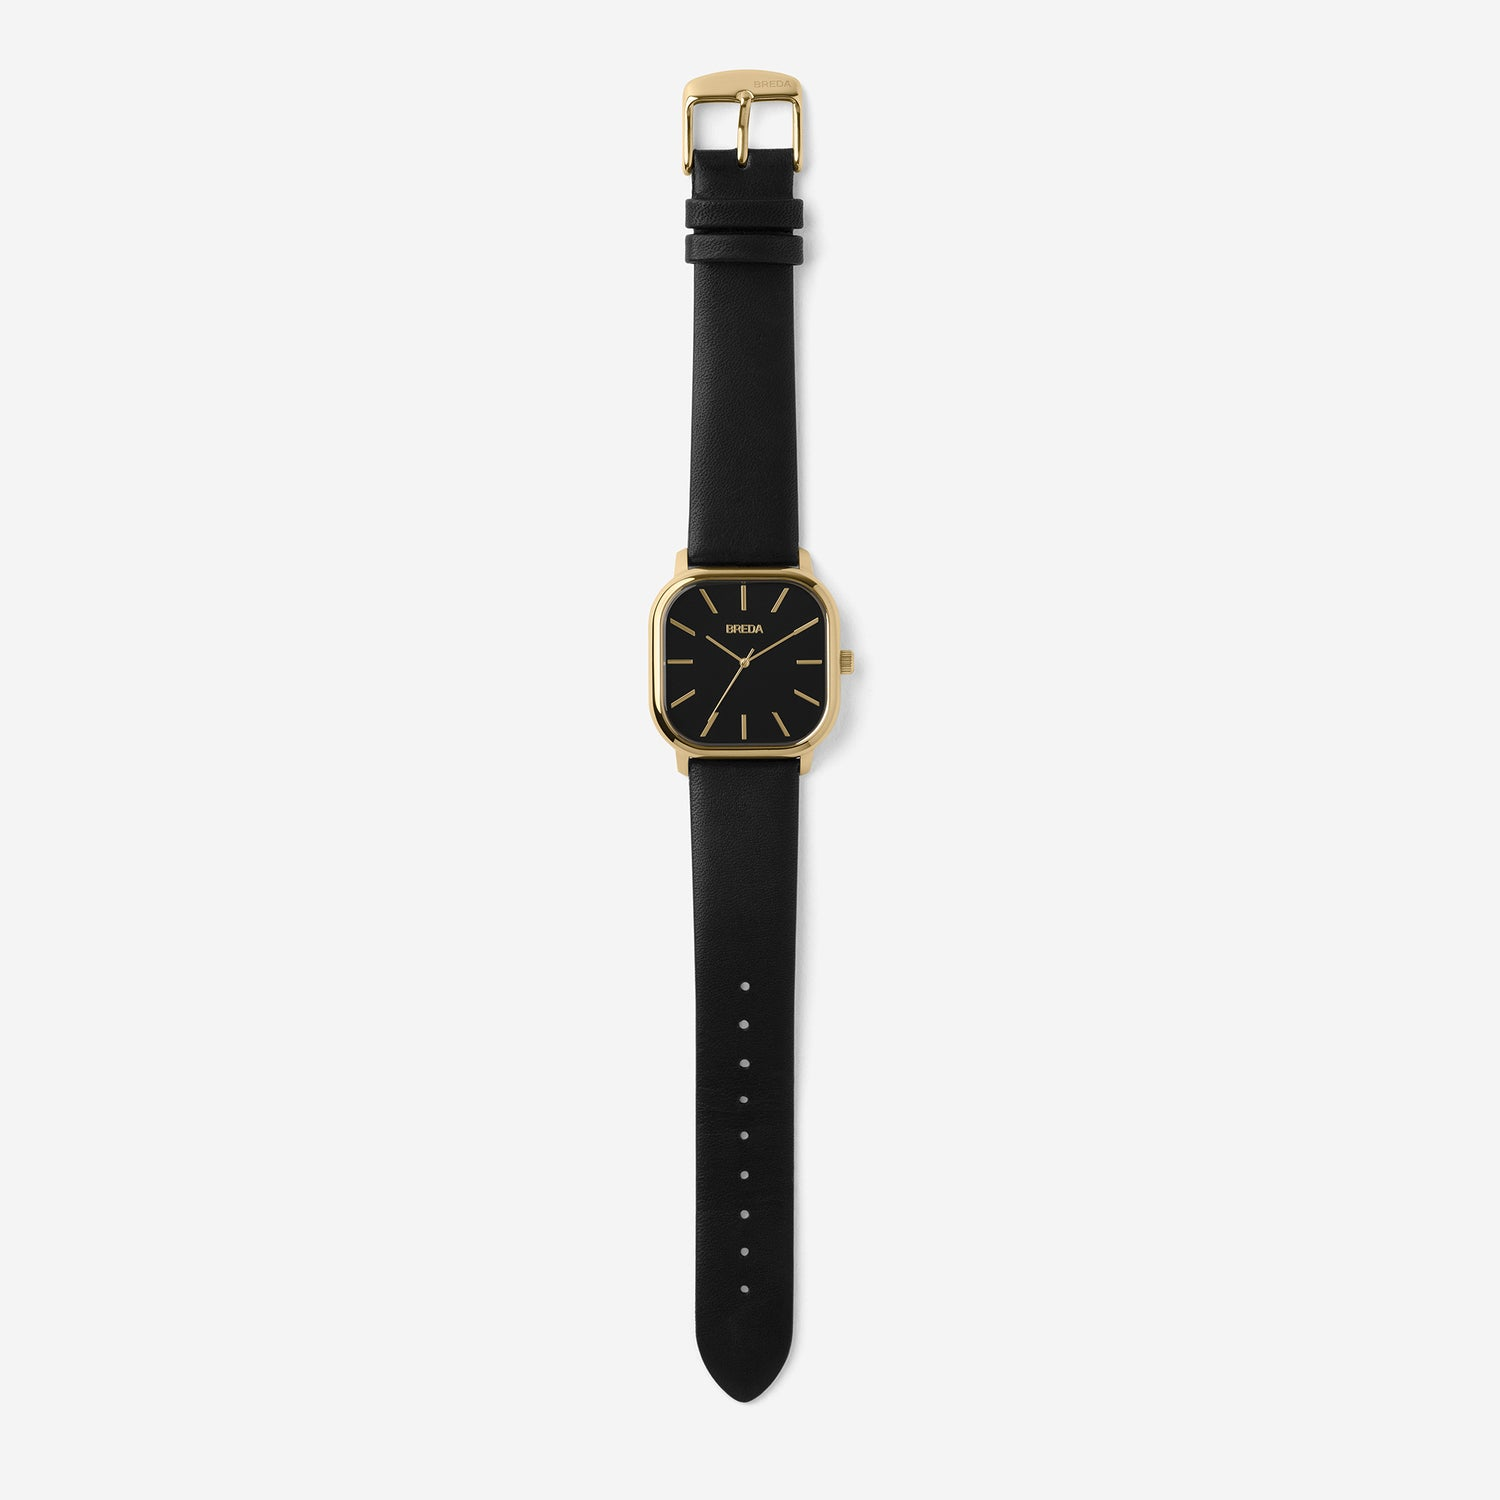 breda-visser-1728h-gold-black-leather-watch-long